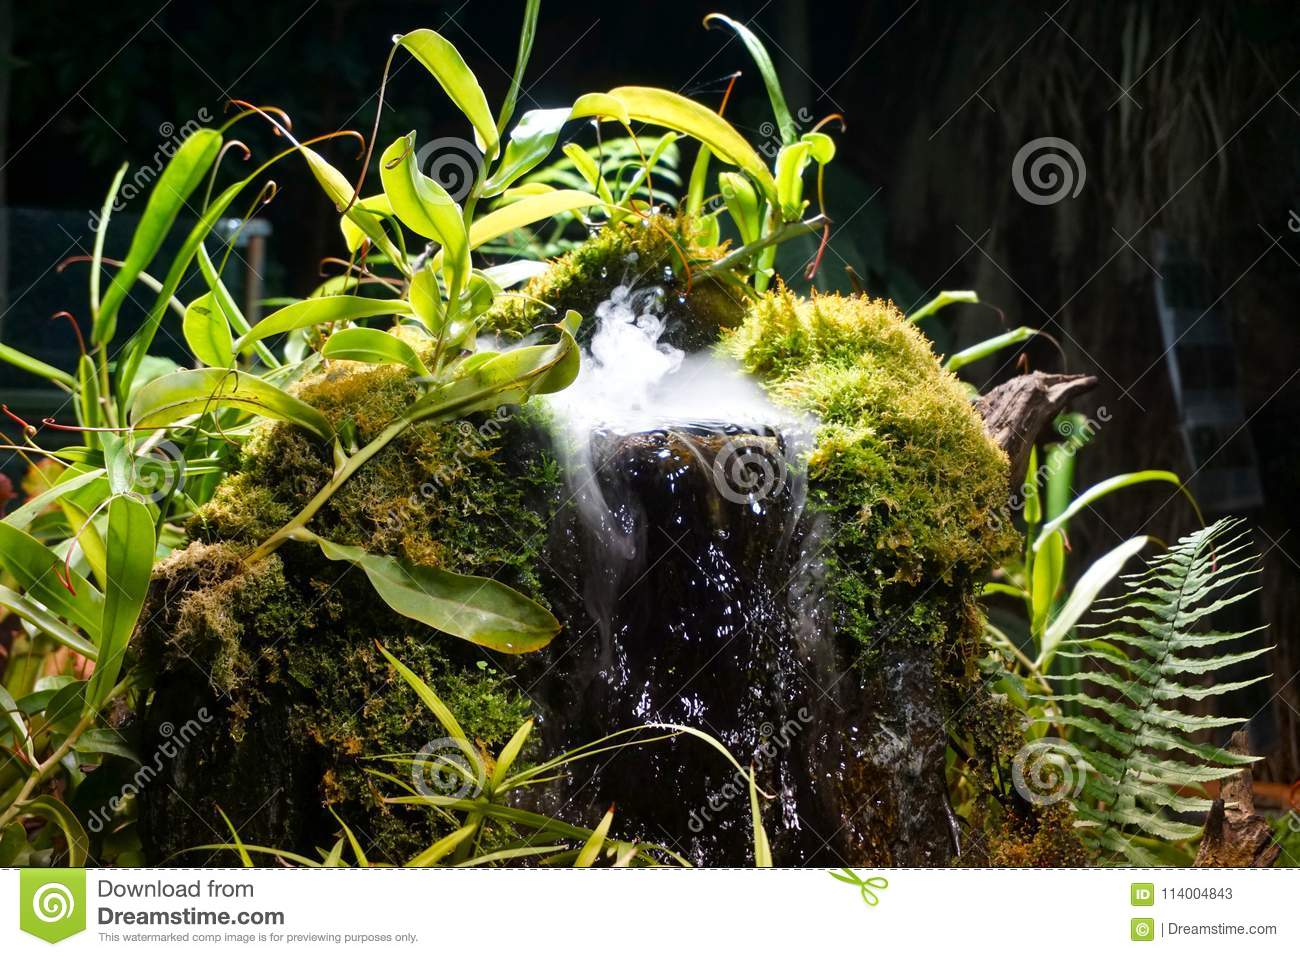 A Magical Waterfall With Plants Stock Image - Image of plant, plants